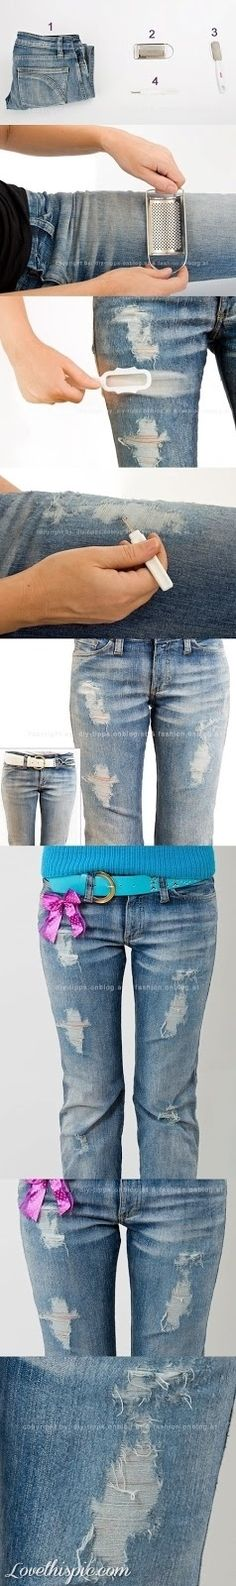 DIY Ripped Jeans Look Pictures, Photos, and Images for Facebook, Tumblr, Pinterest, and Twitter